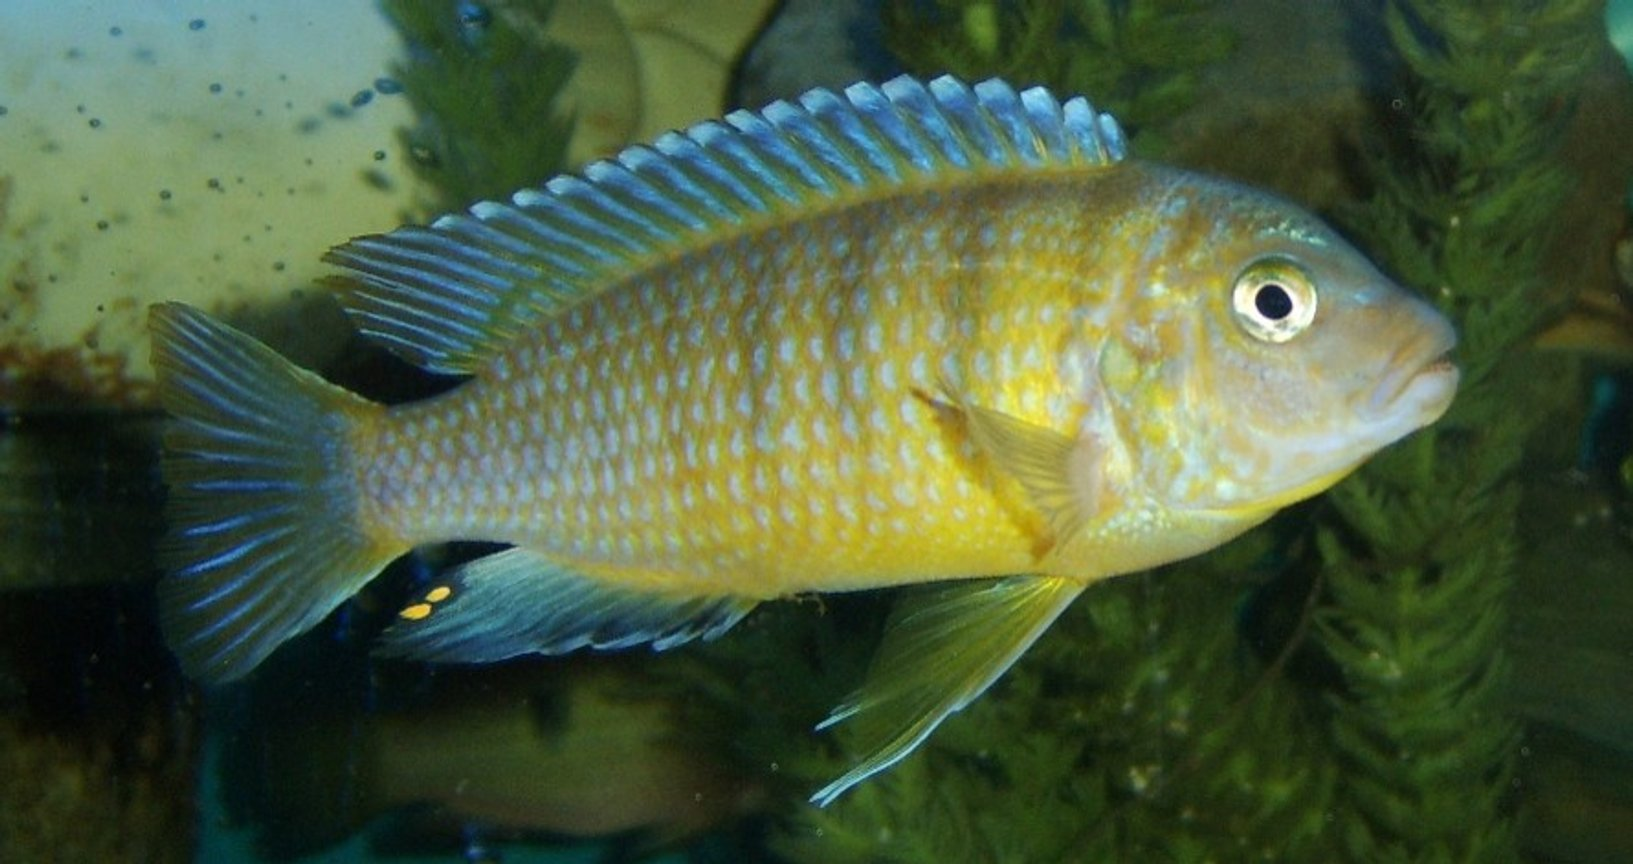 freshwater fish - labidochromis caeruleus - electric yellow cichlid stocking in 120 gallons tank - unknown